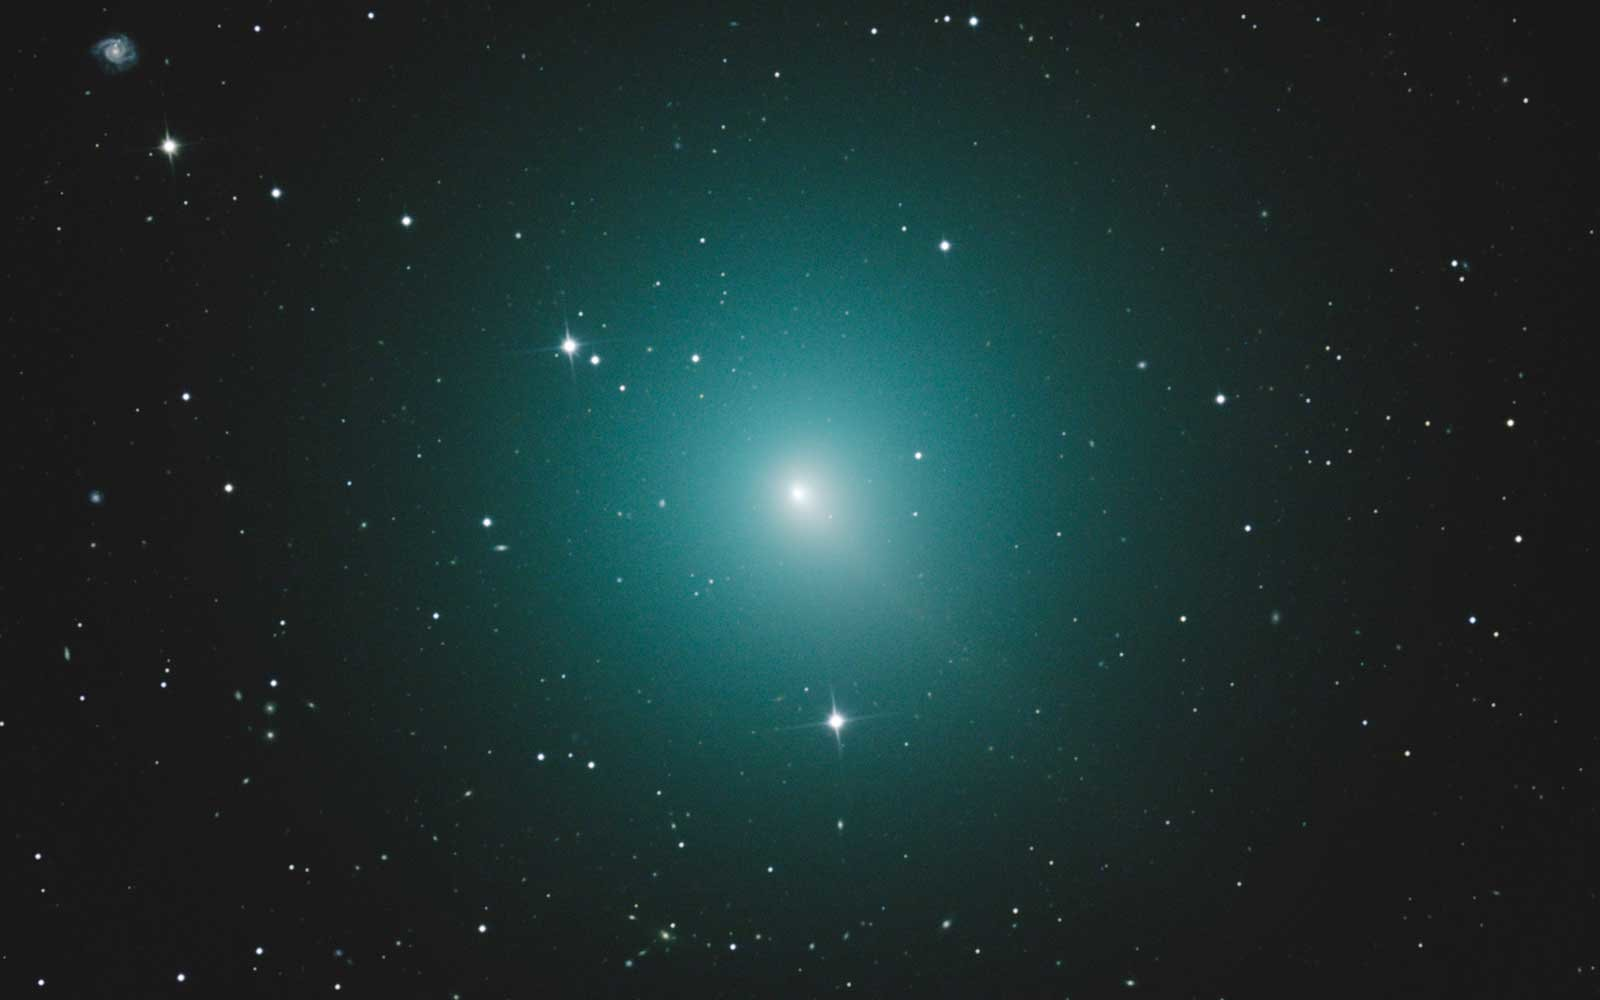 Comet 46P/Wirtanen: how to see the 'Christmas comet' in December 2018